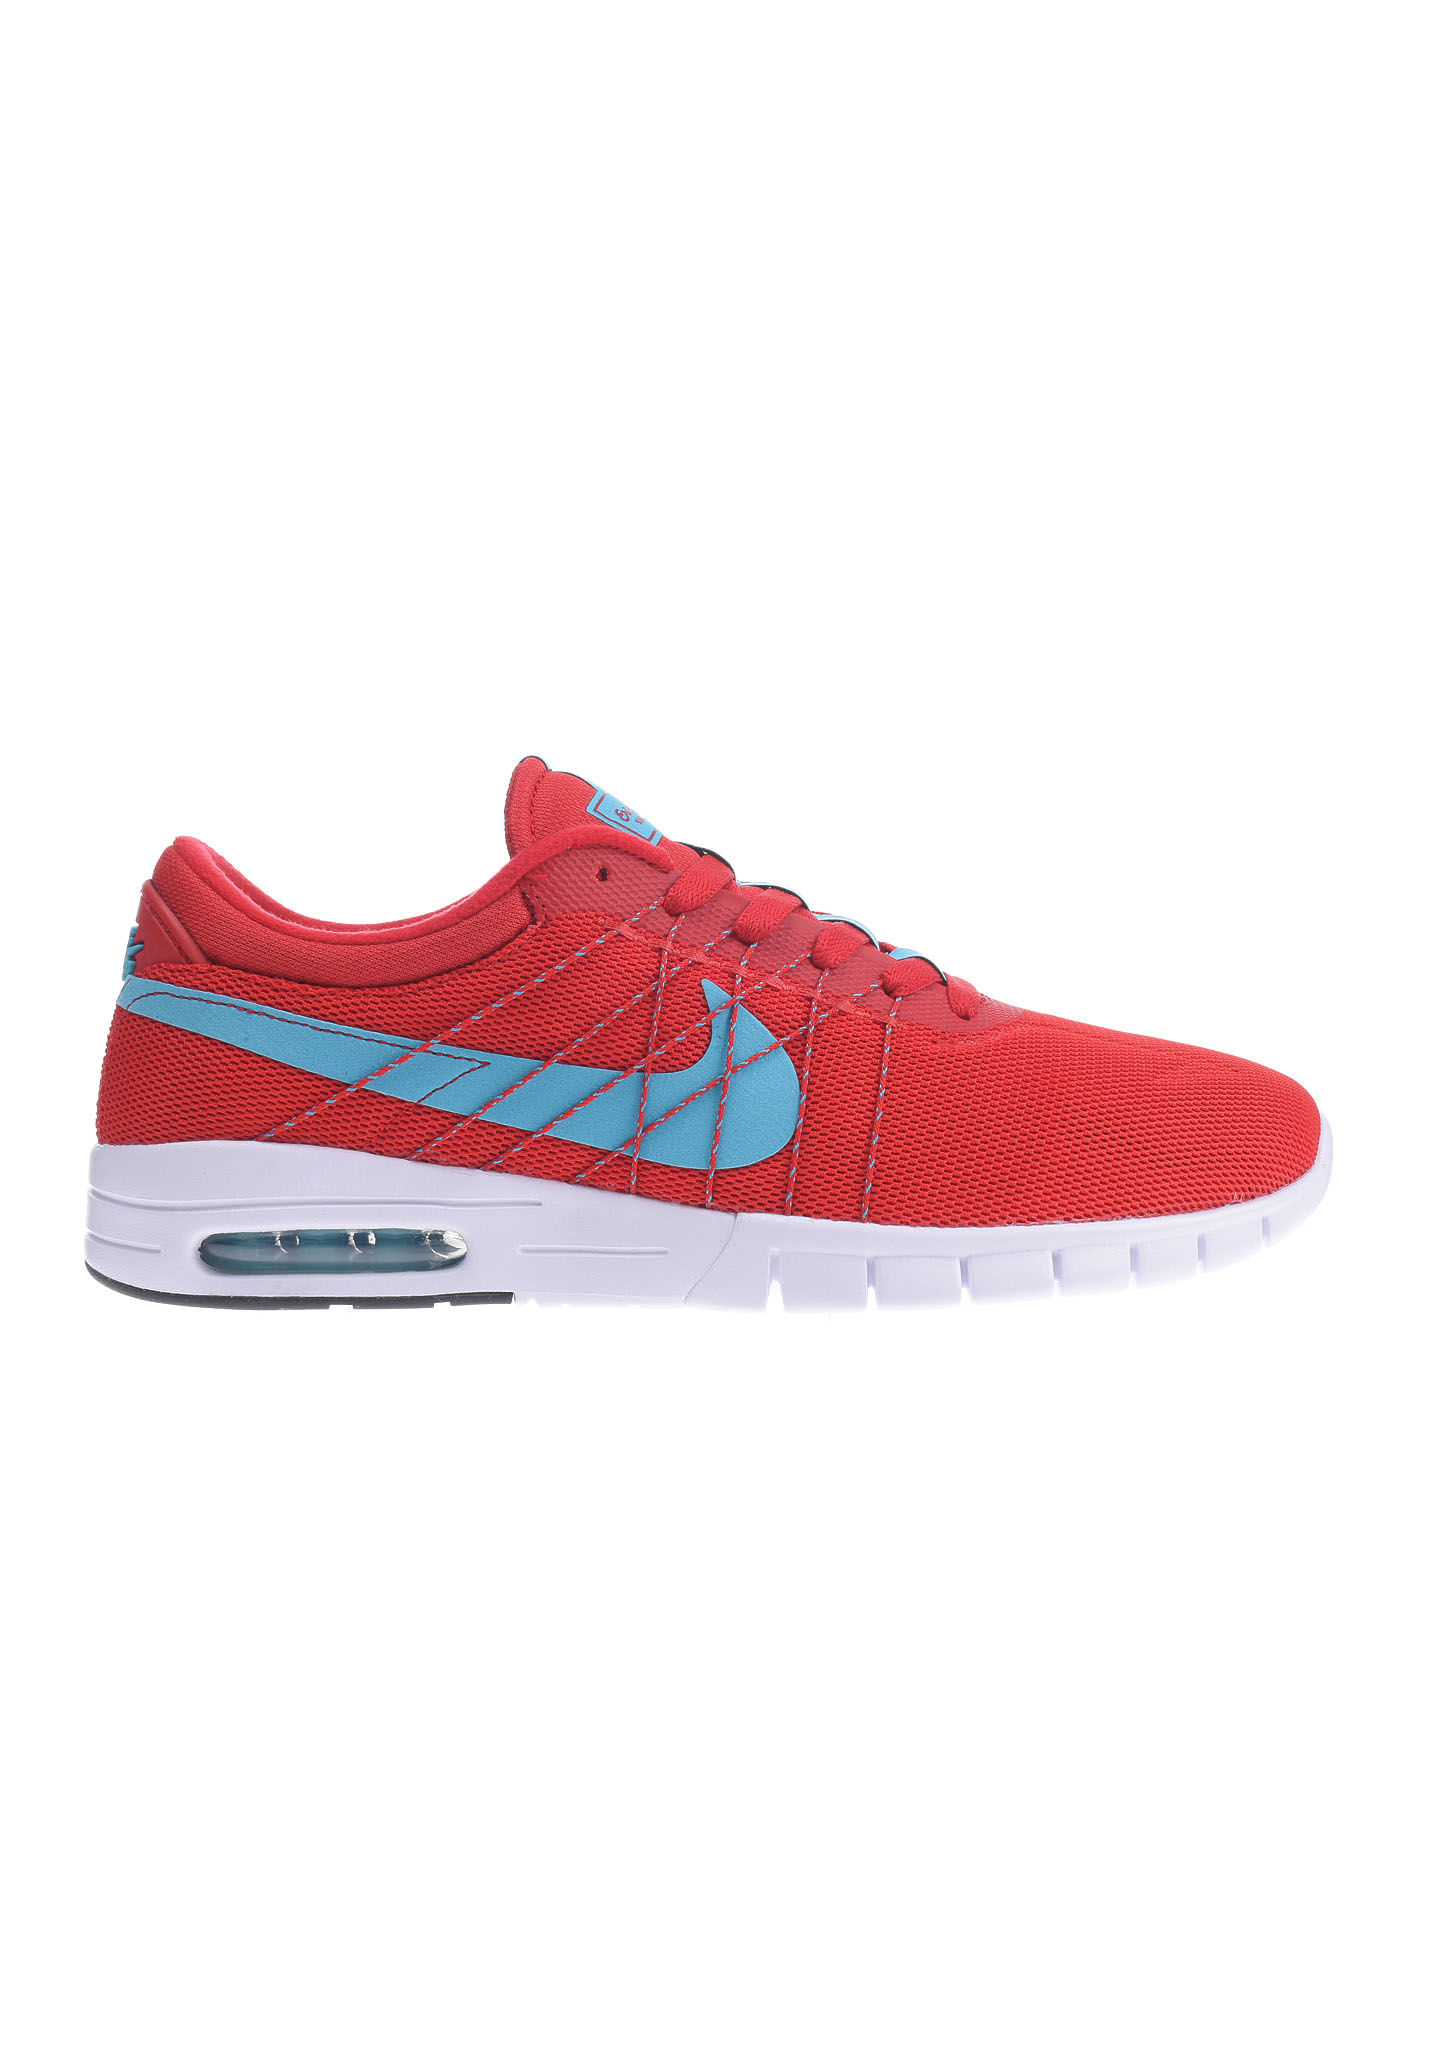 b338af0fa9aa NIKE SB Koston Max - Sneakers for Men - Red - Planet Sports